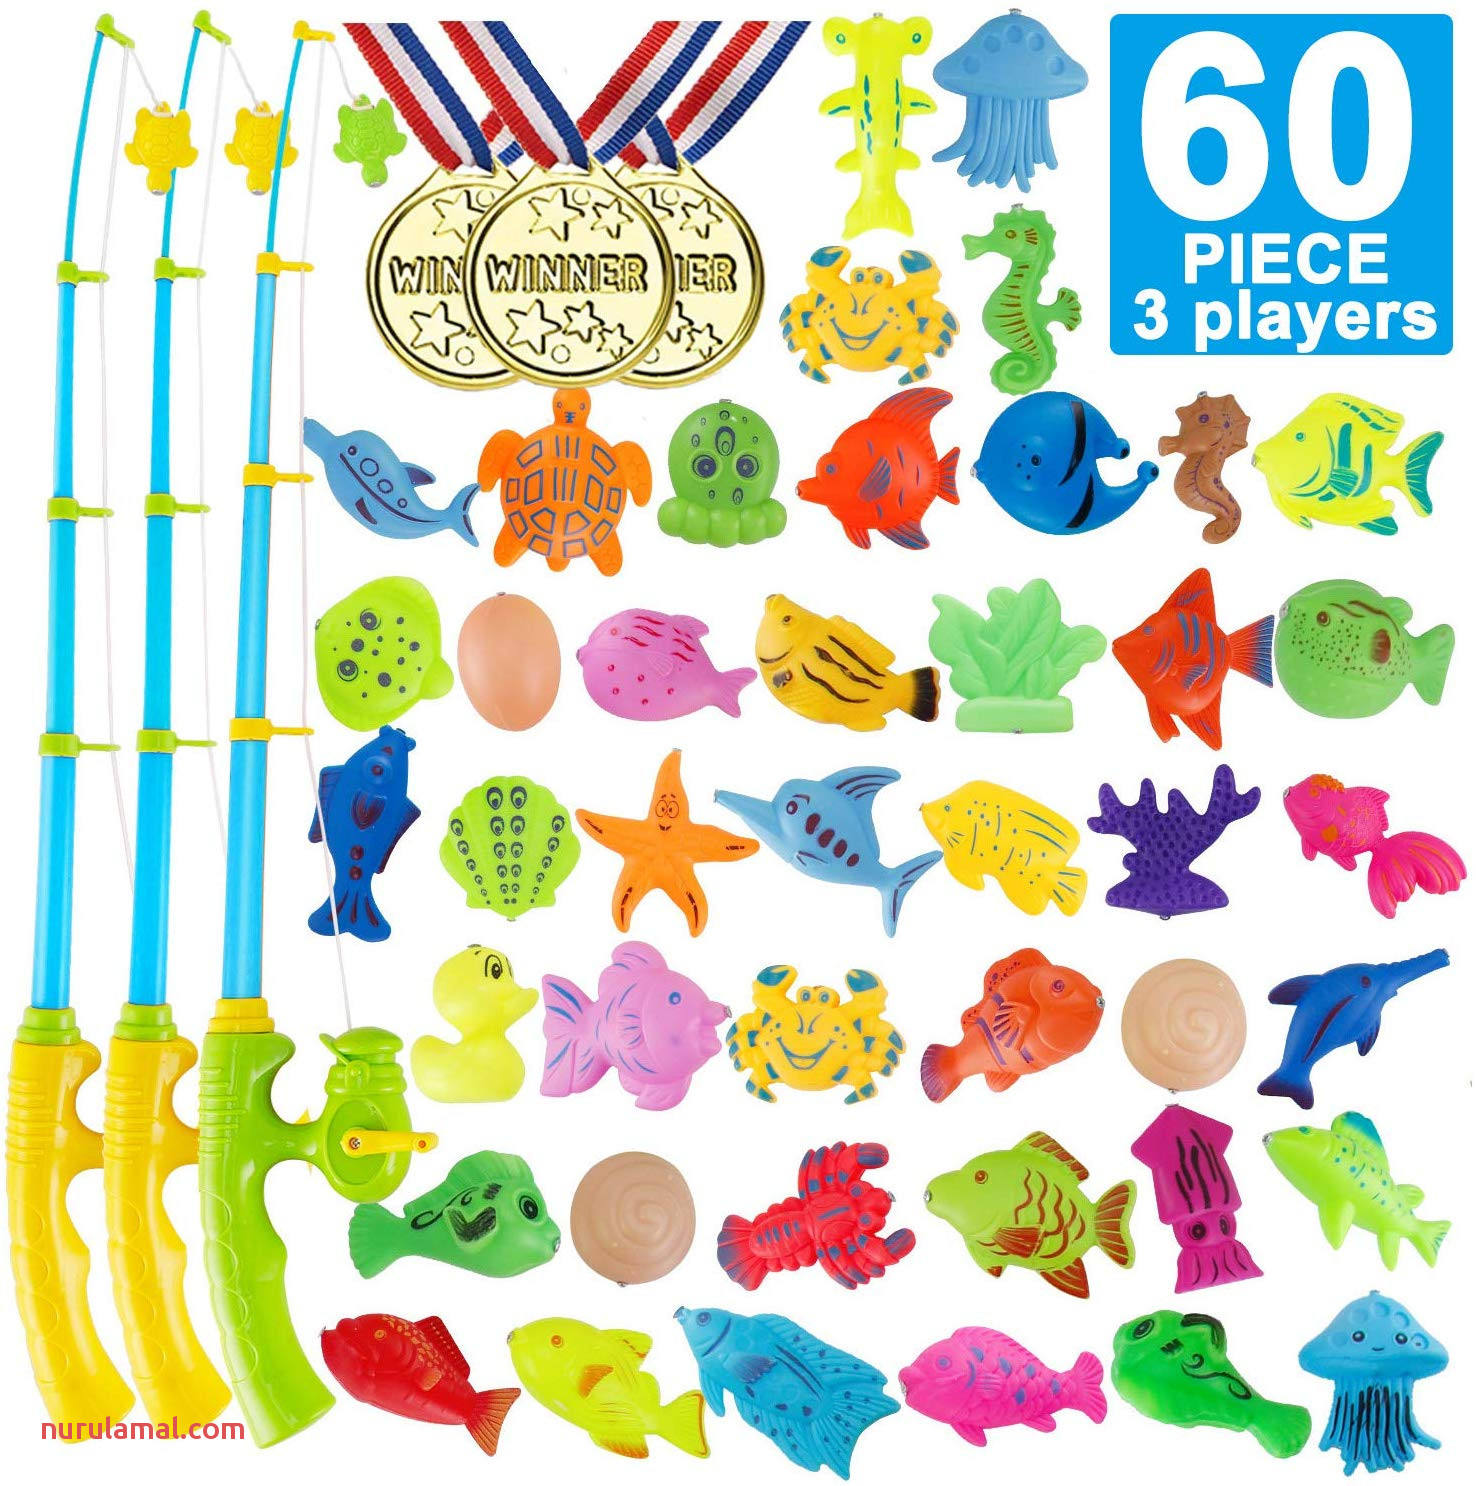 Party Fishing toys 60 Piece Magnetic Fishing toys Game 3 Players Magnetic Fishing Floating toy for Birthday Party Pool Outdoor Summer Party School